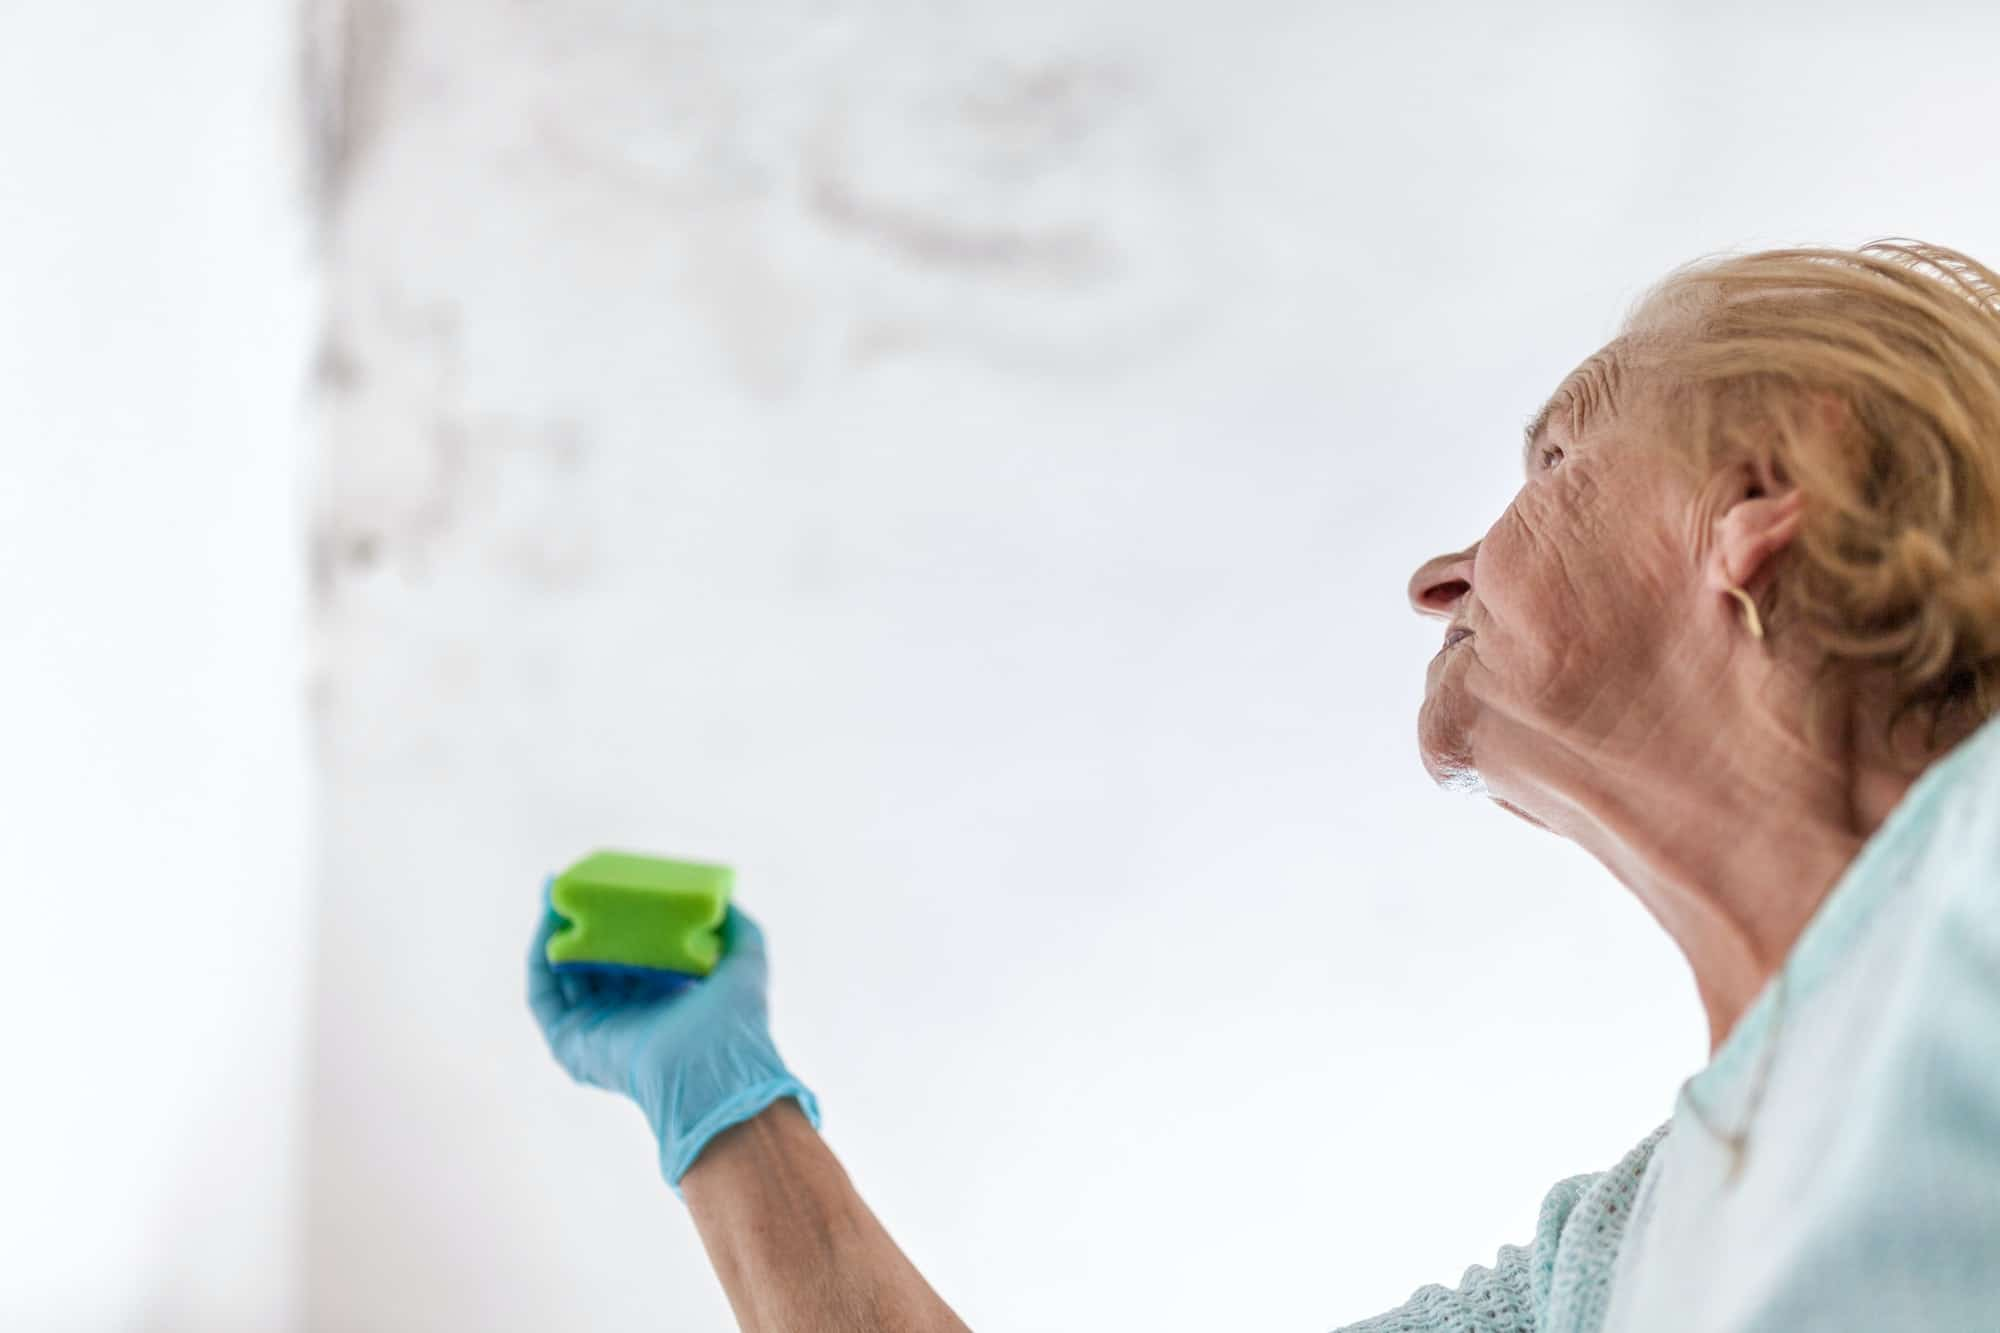 popcorn ceiling removal expert advice